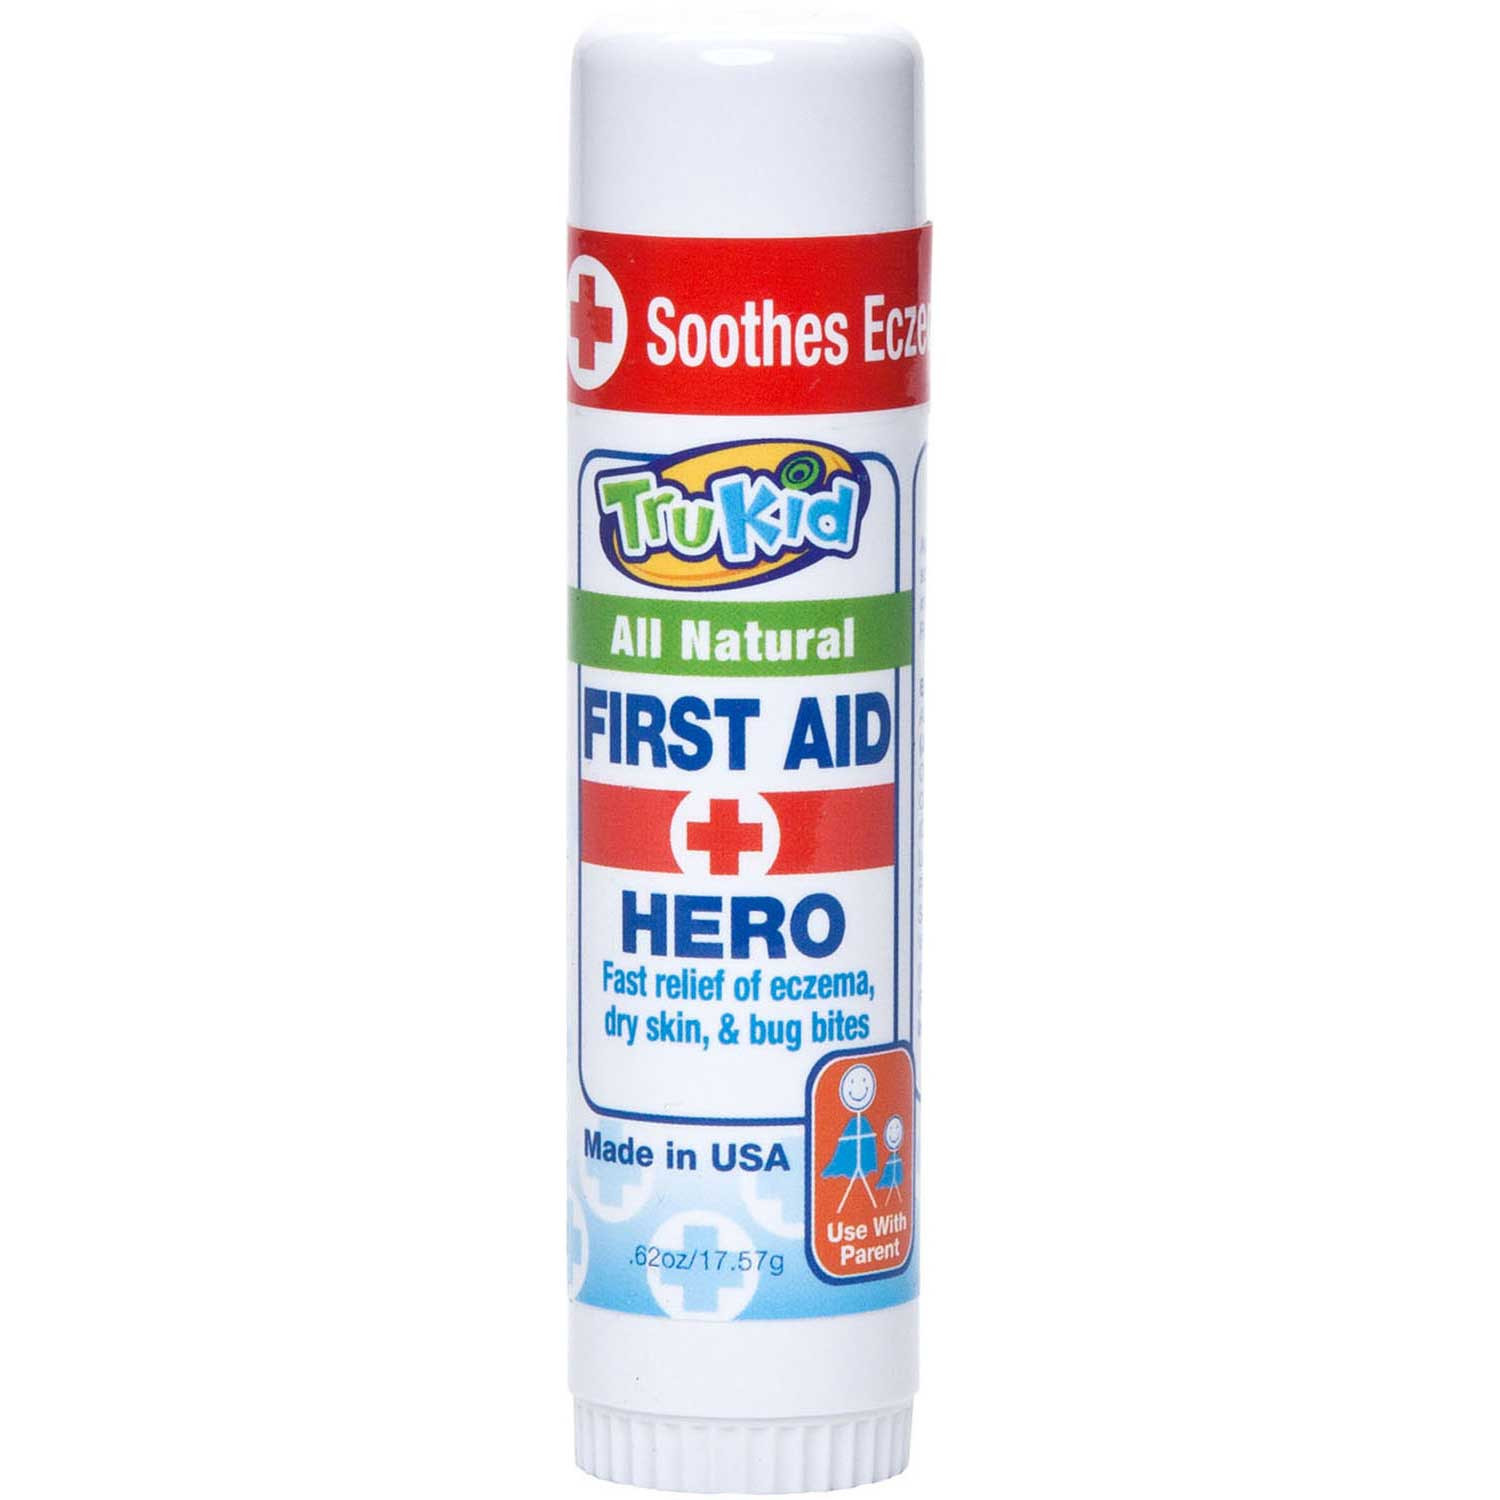 TruKid First Aid Hero Stick, 17.57g